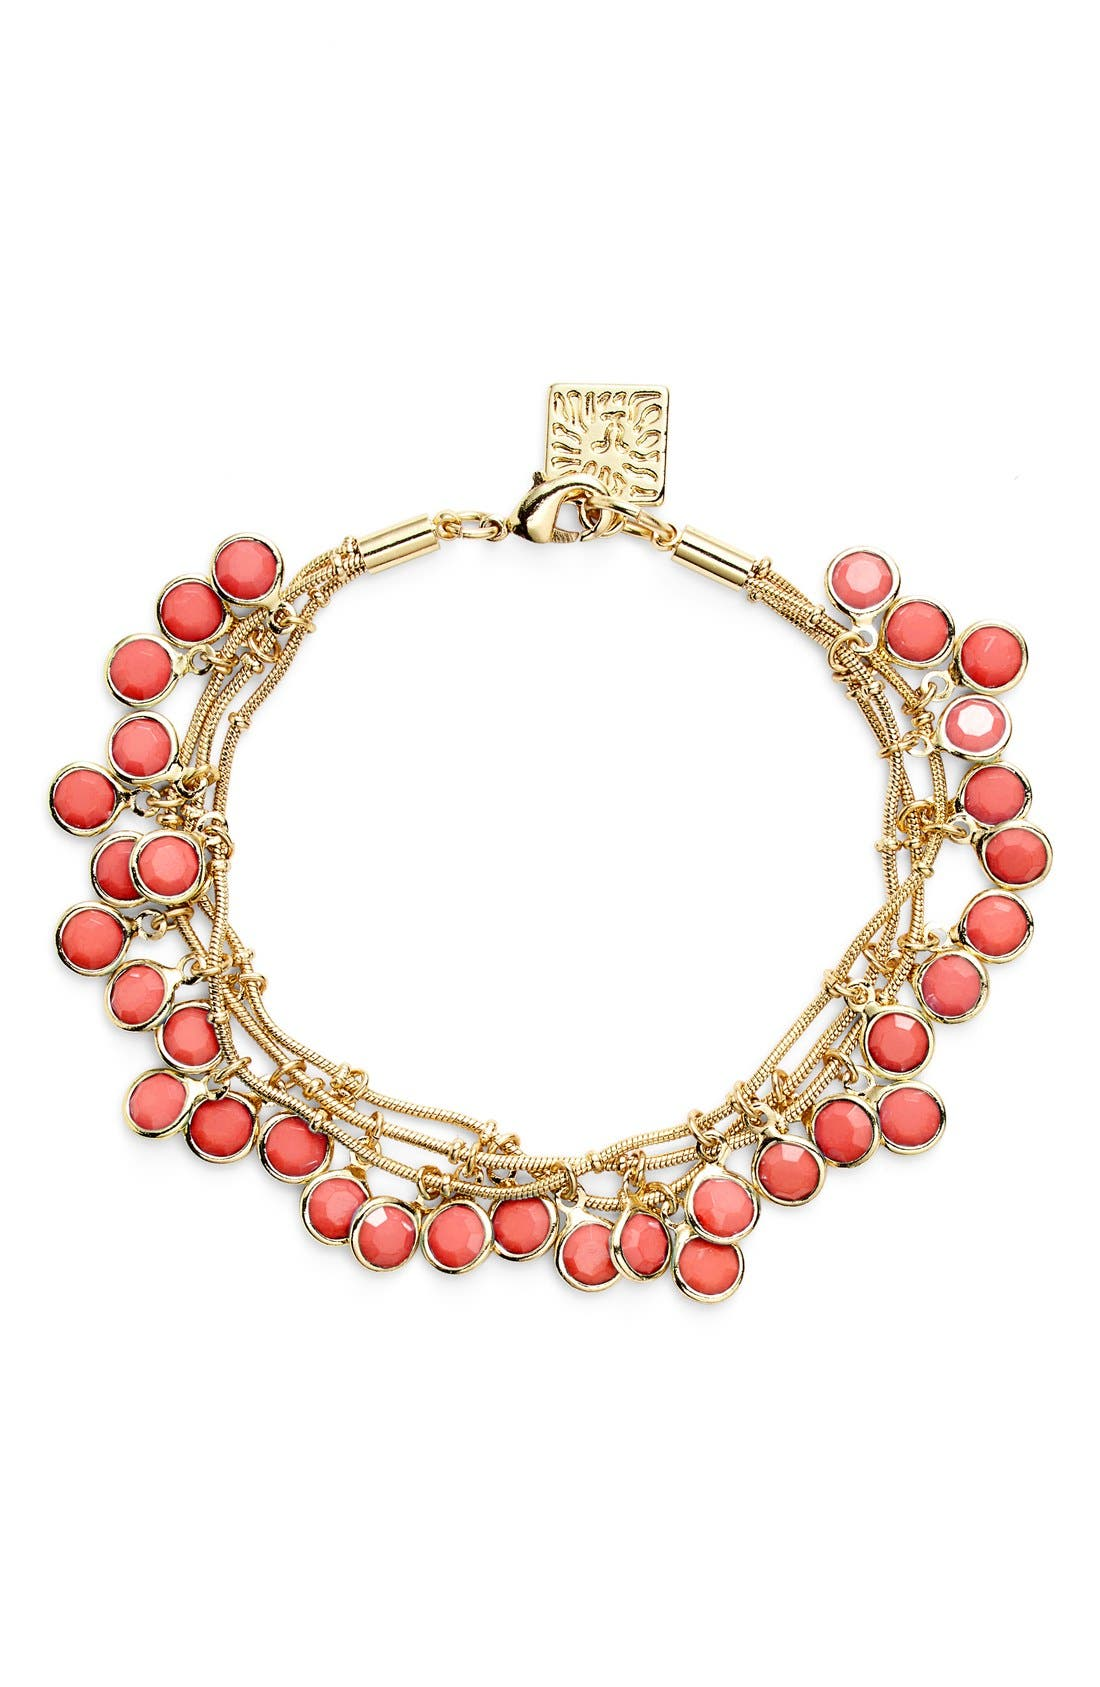 Alternate Image 1 Selected - Anne Klein 'Beacon Ct.' Multistrand Charm Bracelet